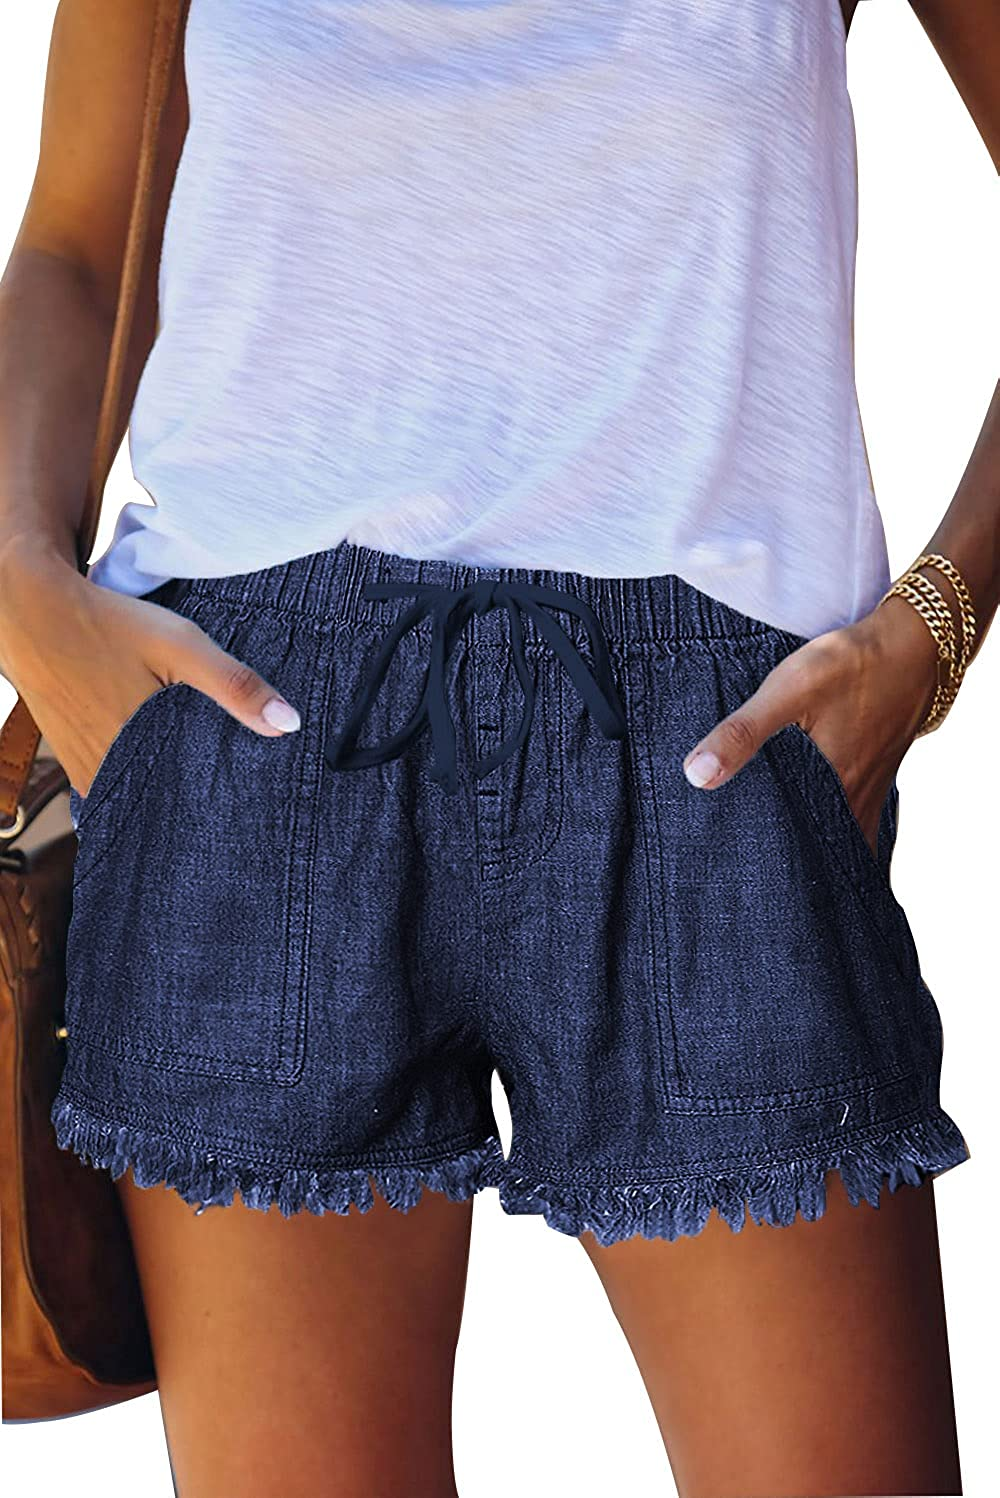 KINGFEN Comfy Drawstring Casual Elastic Waist Shorts for Women Summer Beach Cotton Pull On Short with Pockets